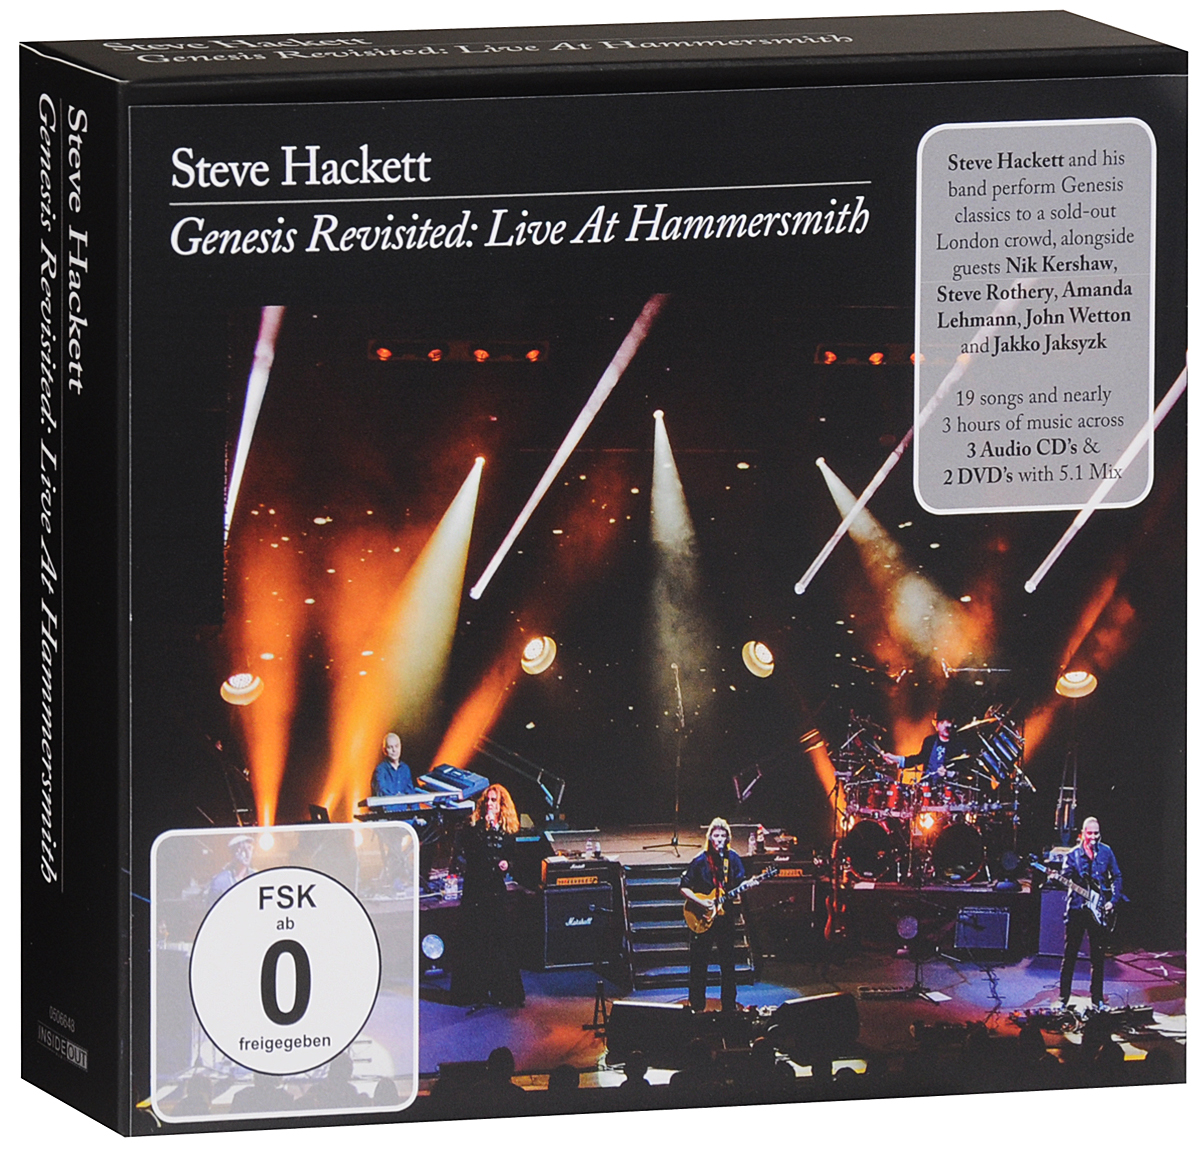 Стив Хэкетт Steve Hackett. Genesis Revisited. Live At Hammersmith (3 CD + 2 DVD) steve madden st170awmar56